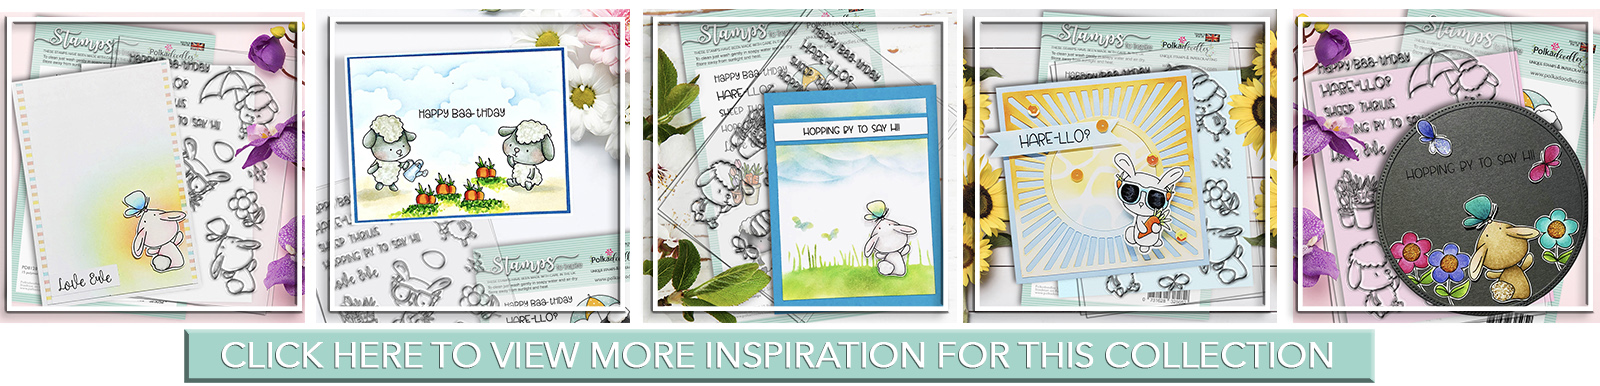 Inspiration and sample images for Springin Around collection